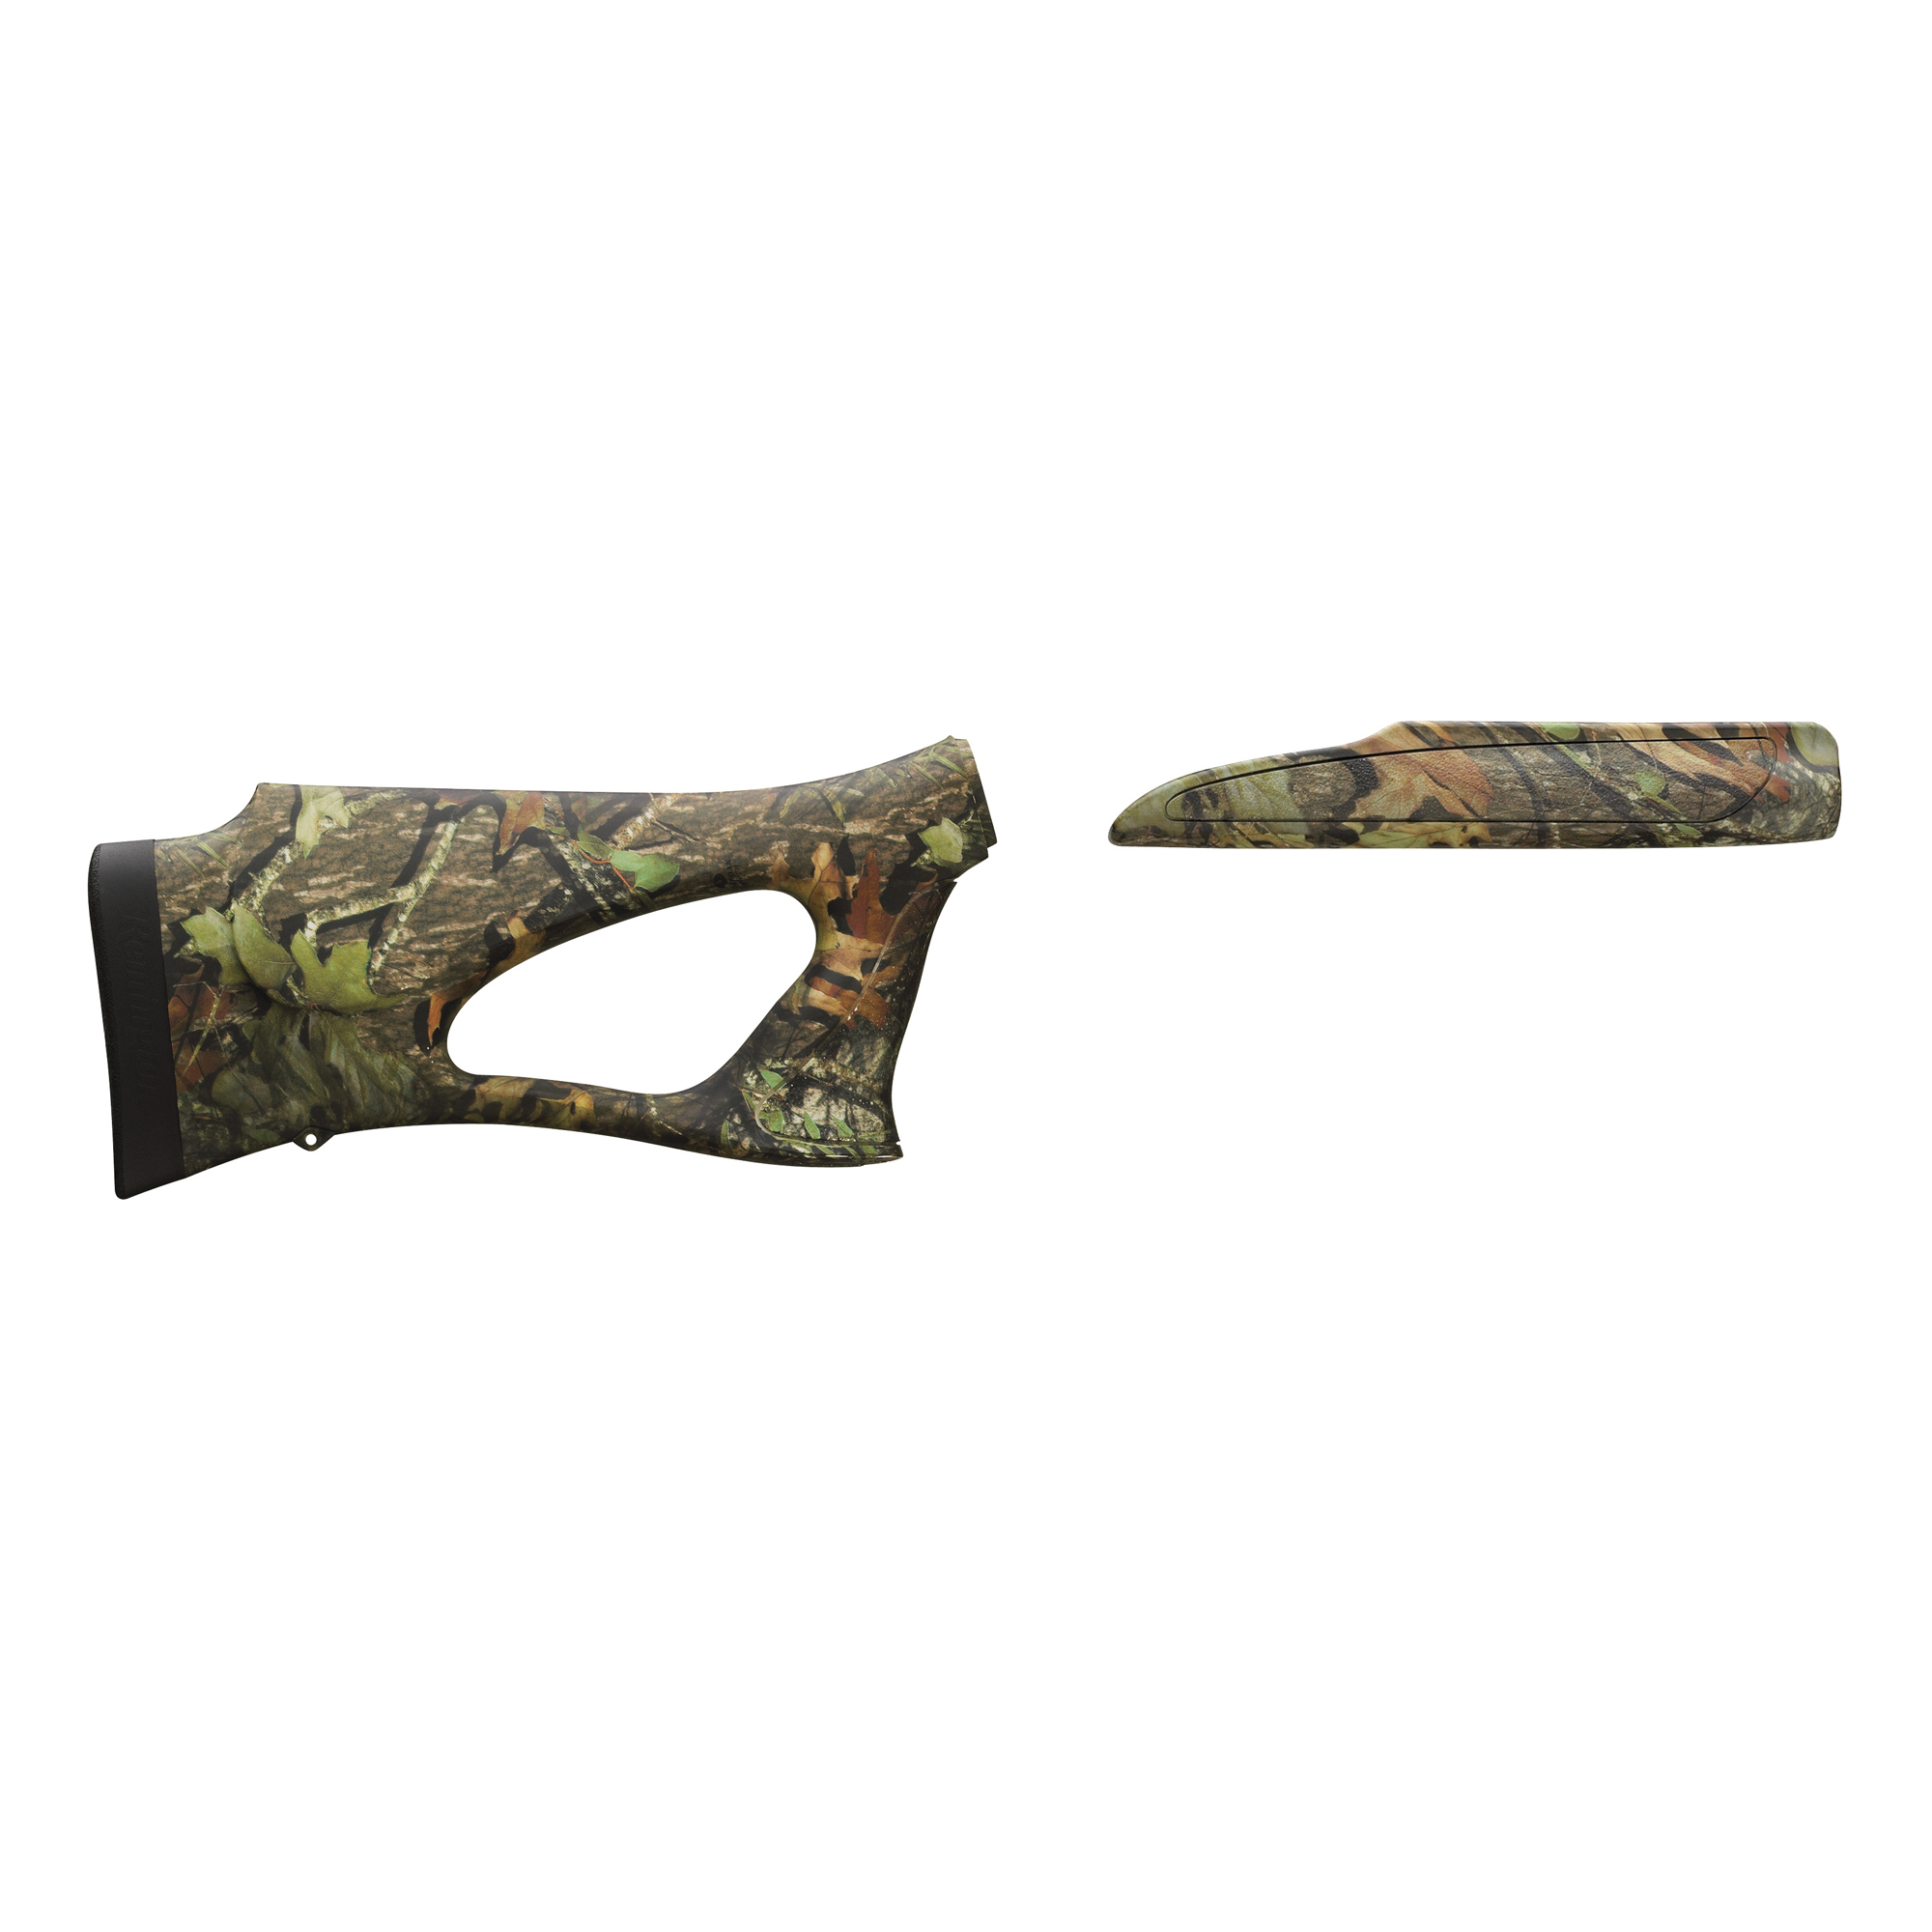 """Combining the best of thumbhole and pistol grip designs"""" the new Remington 870 12-Gauge Shurshot Thumbhole Stock and Forend affords right and left handed shooters equally astounding levels of shooting comfort and rock steady aim. The natural"""" ergonomic pistol grip optimizes point ability and works in conjunction with the revolutionary new Supercell recoil pad to cancel felt recoil for more accurate first shots and faster follow ups. It's an ultra-lightweight design and the comb is specially contoured for rapid eye alignment with your sights or scope."""